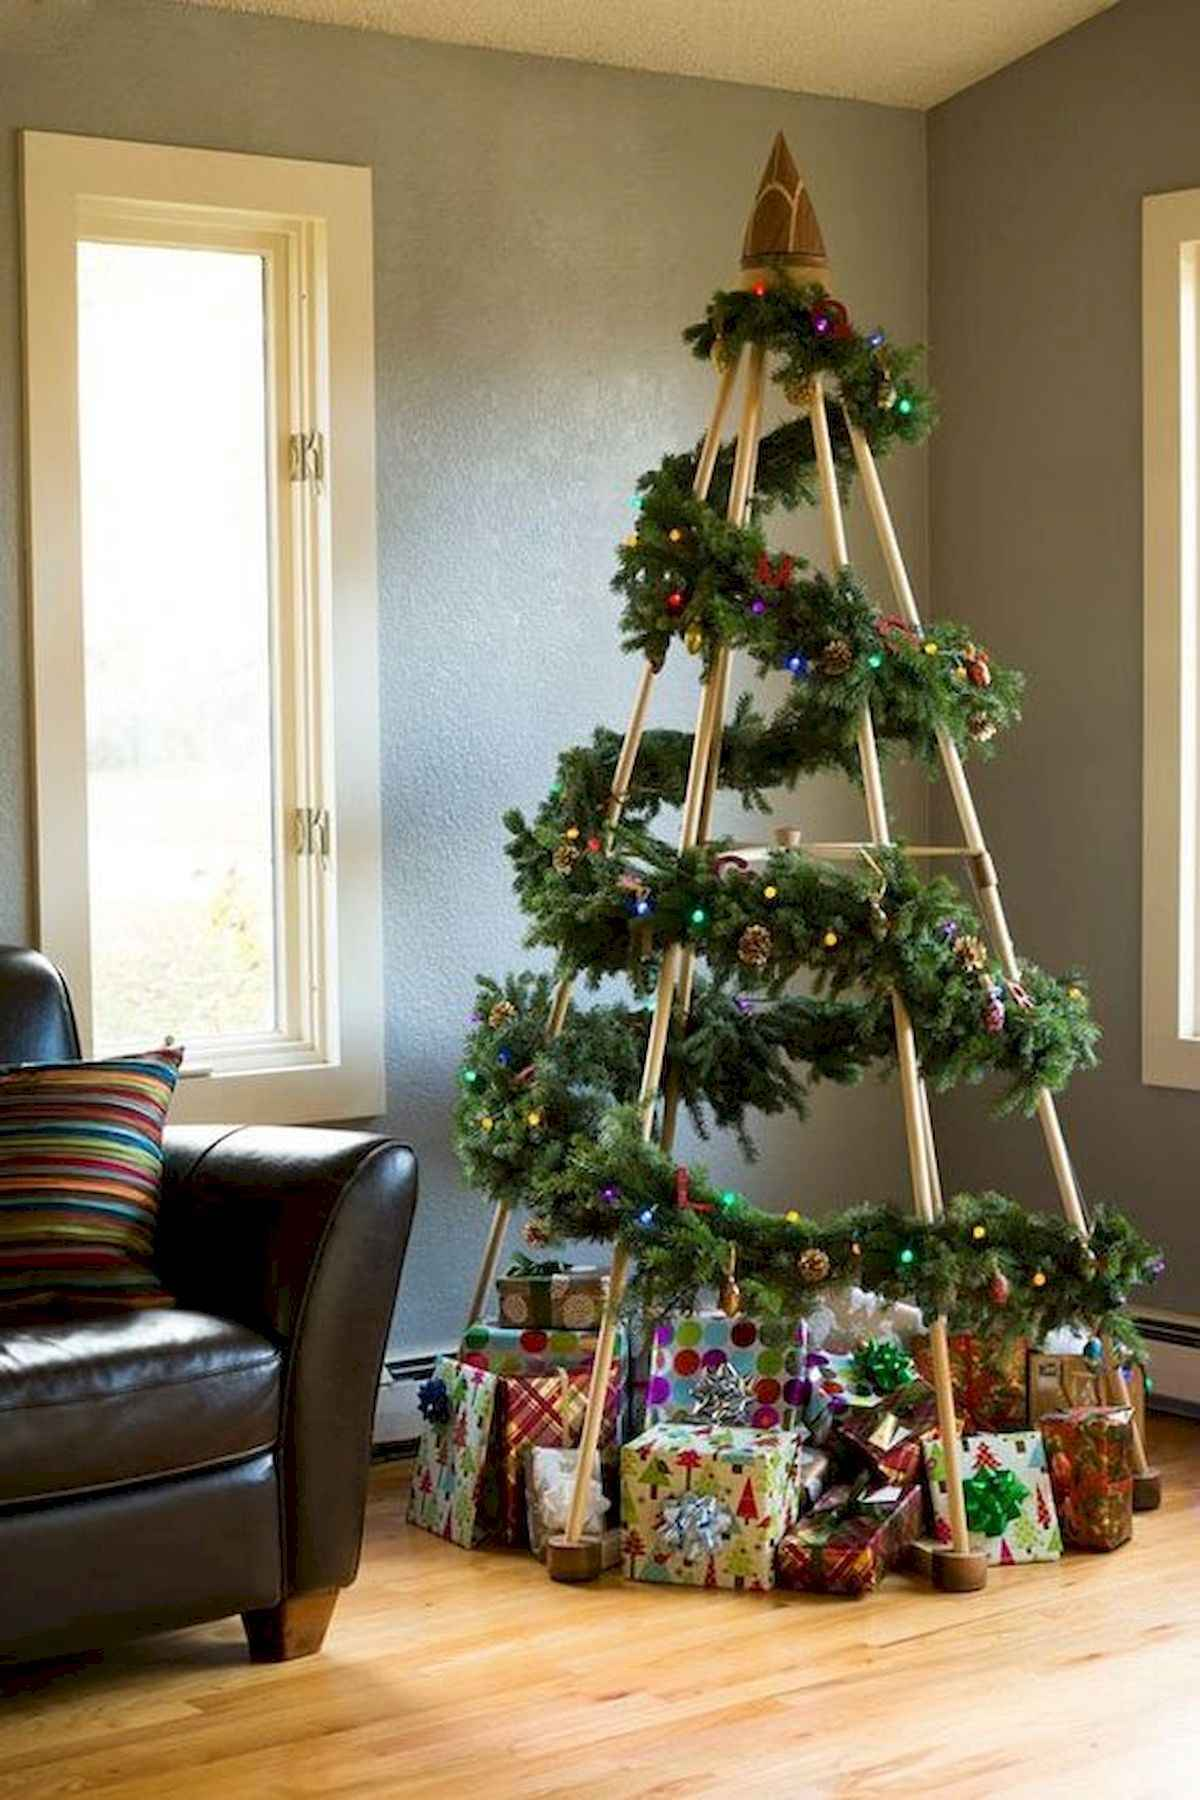 60 awesome christmas tree decorations ideas (51)